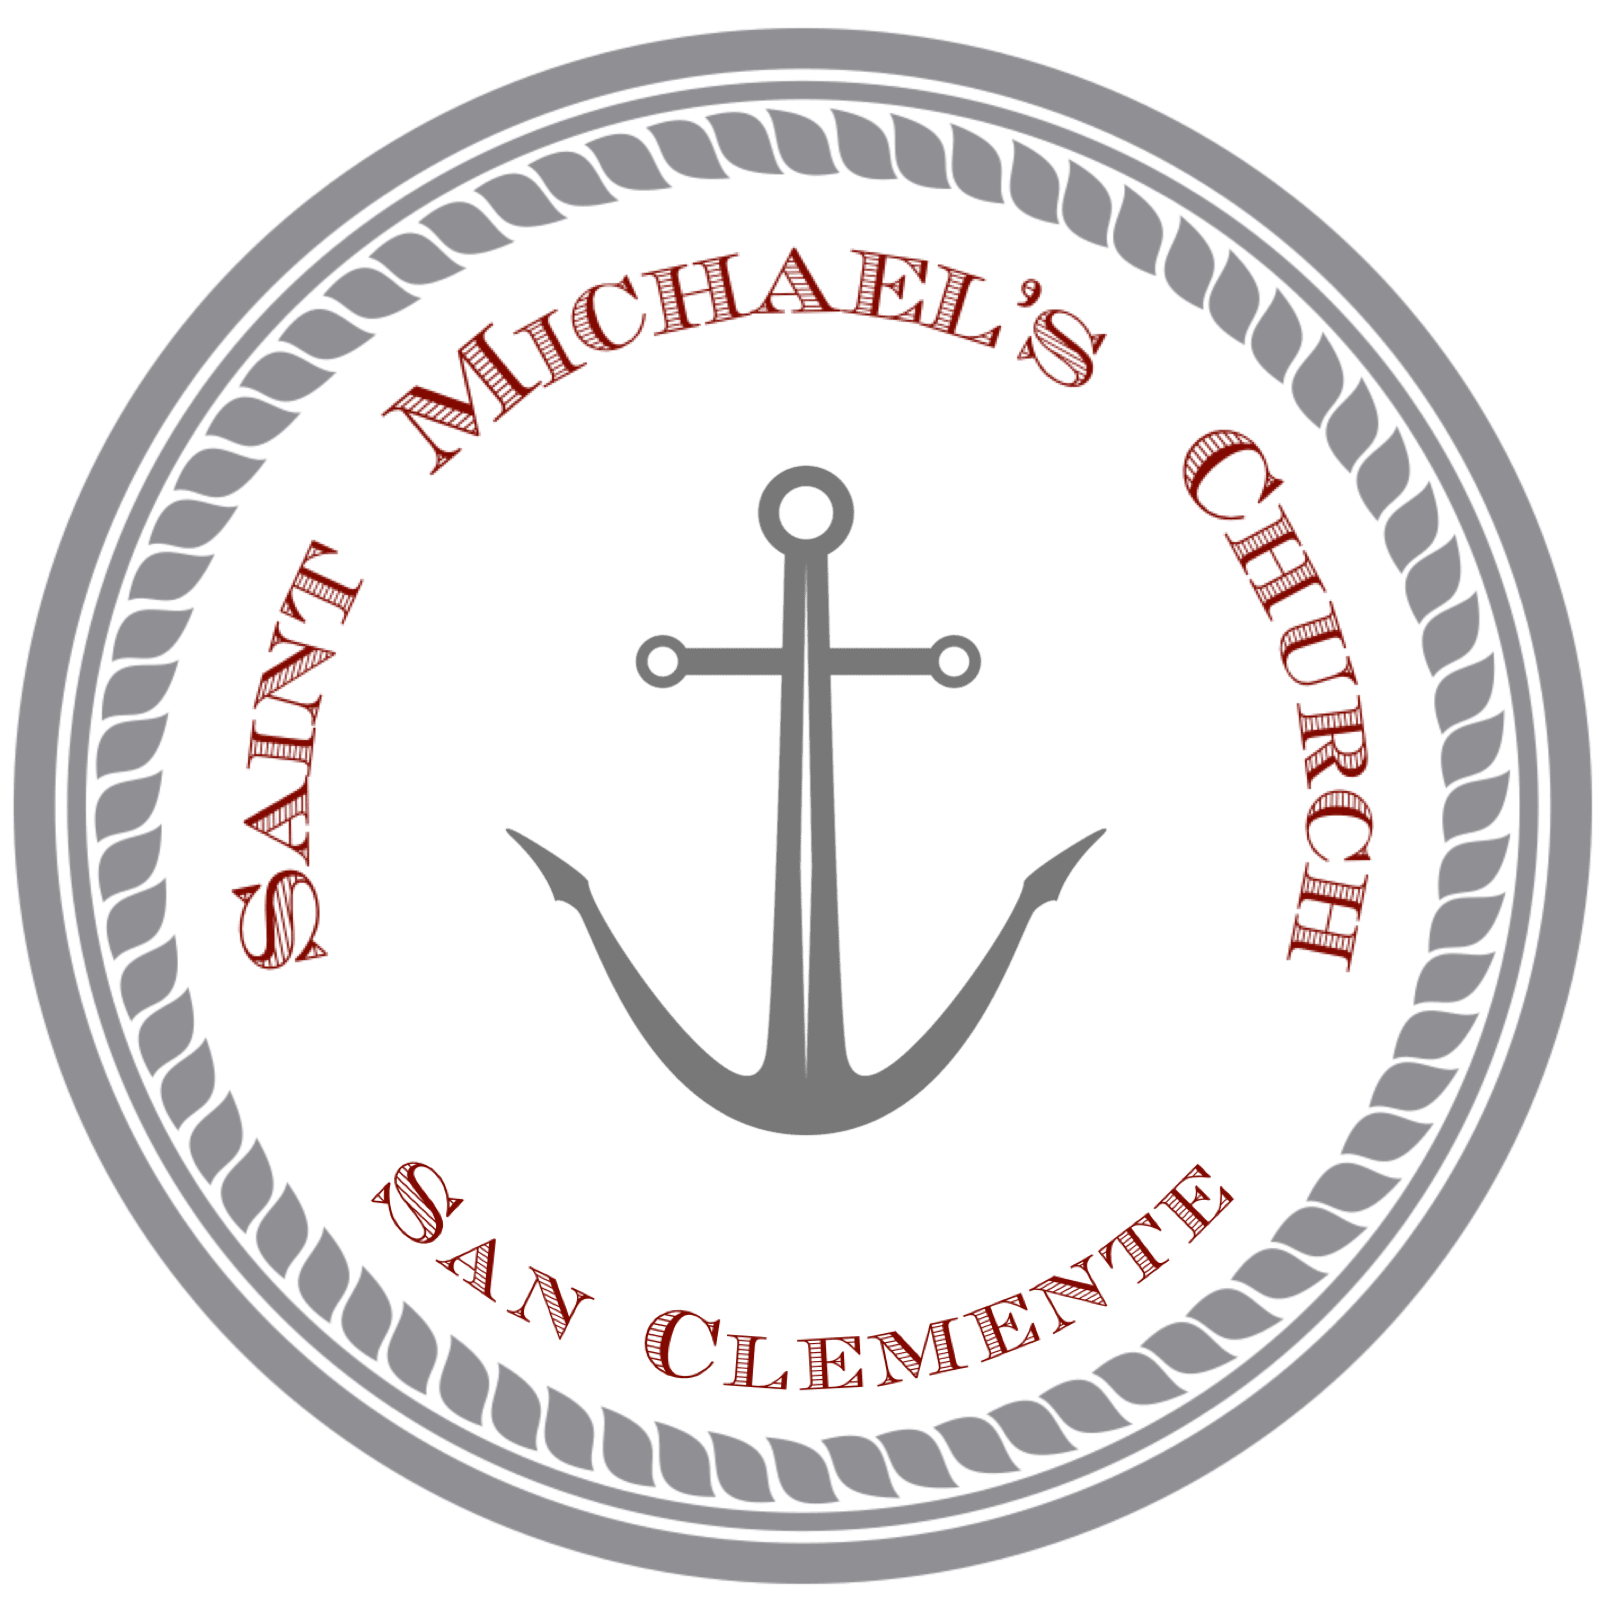 The St. Michaels Society